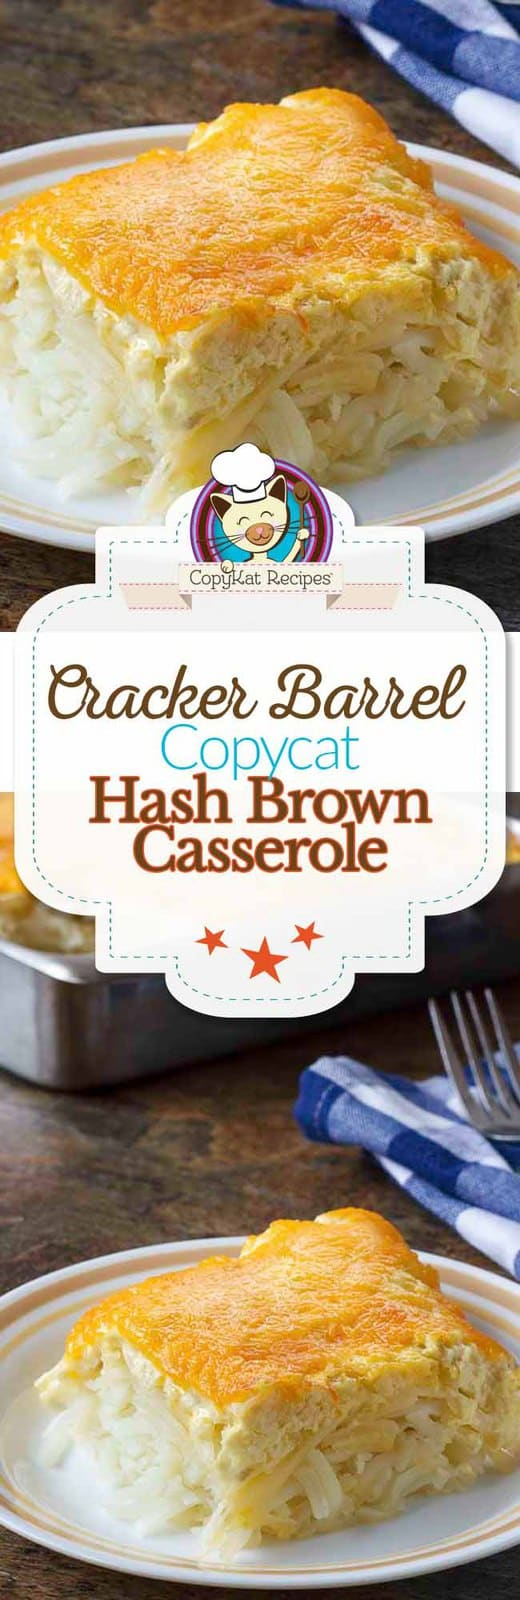 A picture of Cracker Barrel Hashbrown casserole.